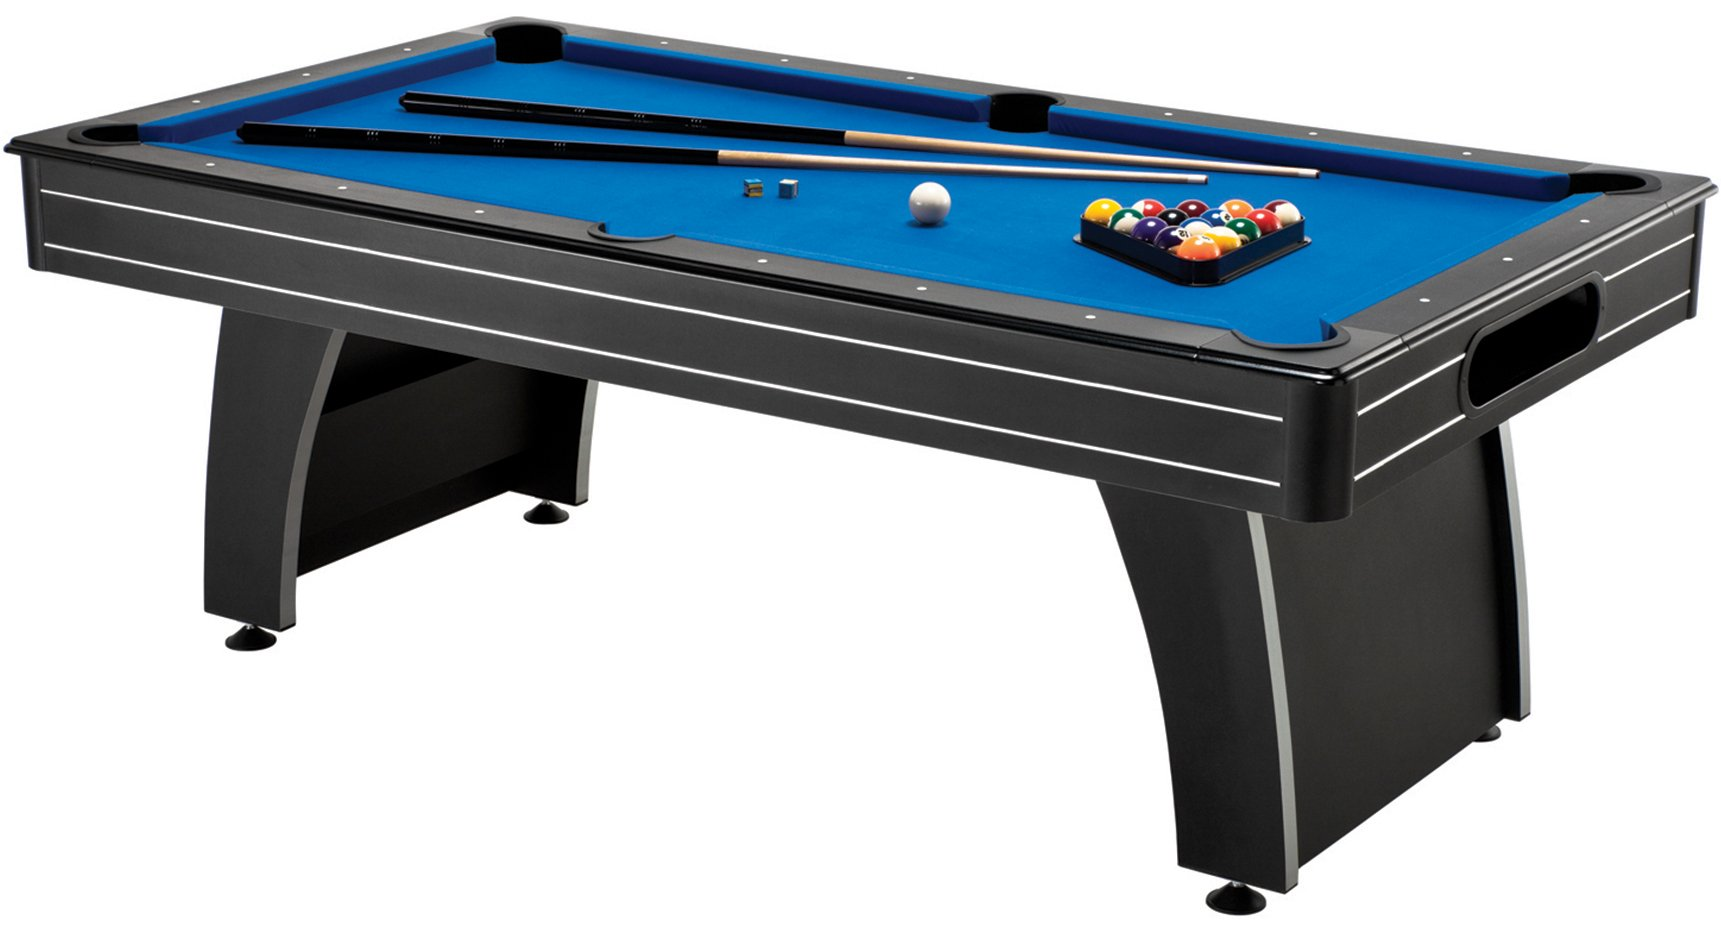 Buy Pool Tables Now!